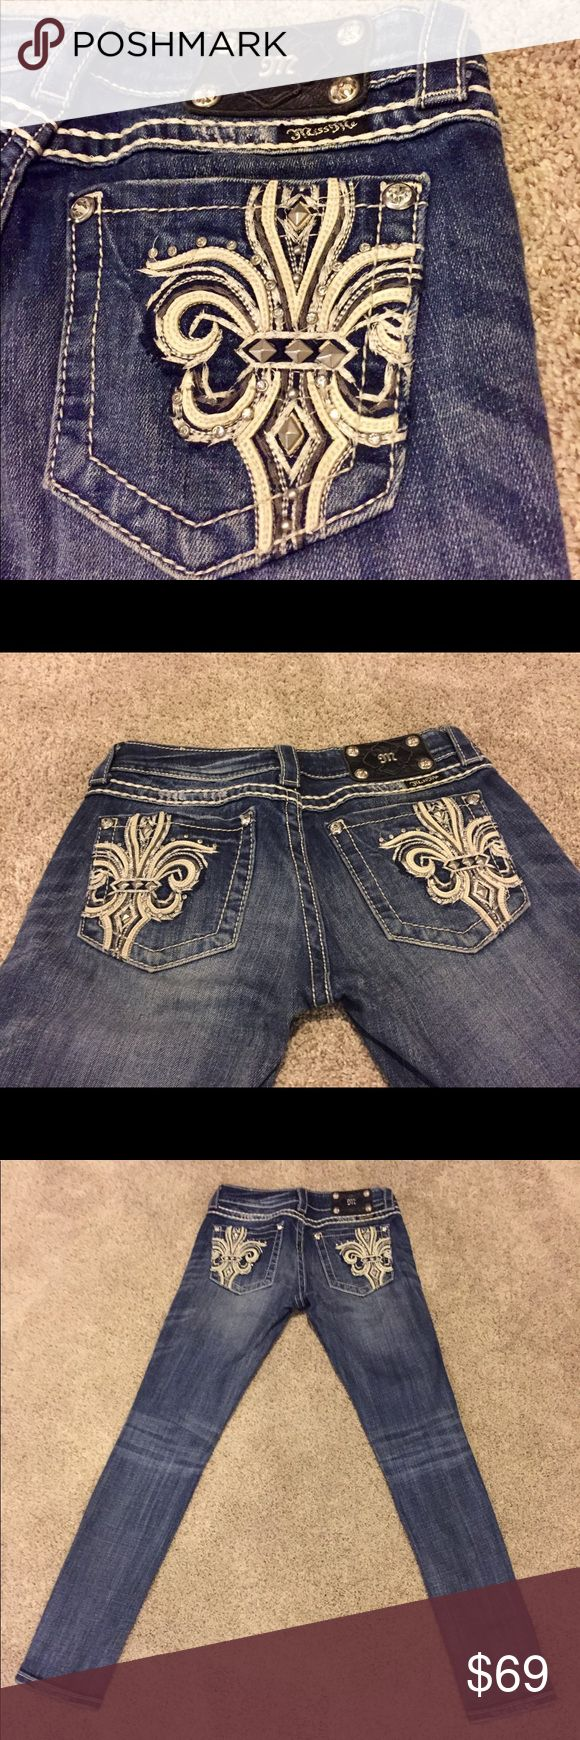 Miss Me Embellished Fleur De Lis Skinny Jeans 26 Miss Me Authentic Jeans Style # JP518255 Skinny MRSP $119.50 Cut : Skinny Wash : Blue MED  Material : 98% Cotton 2% Elastane Waist: approximately 27 Inches Rise: 6.5 Inches Inseam : 31.5 Inches  Design : Fleur De Lis Crystal Jewels & Stones Condition : Excellent Used Condition!!! PERFECT Stitching!! Not one stitch or Rhinestone out of place, BEAUTIFUL! Only worn a few times.. No holes, rips or stains.. CLEAN! We Ship Quick, Within 24 hours…